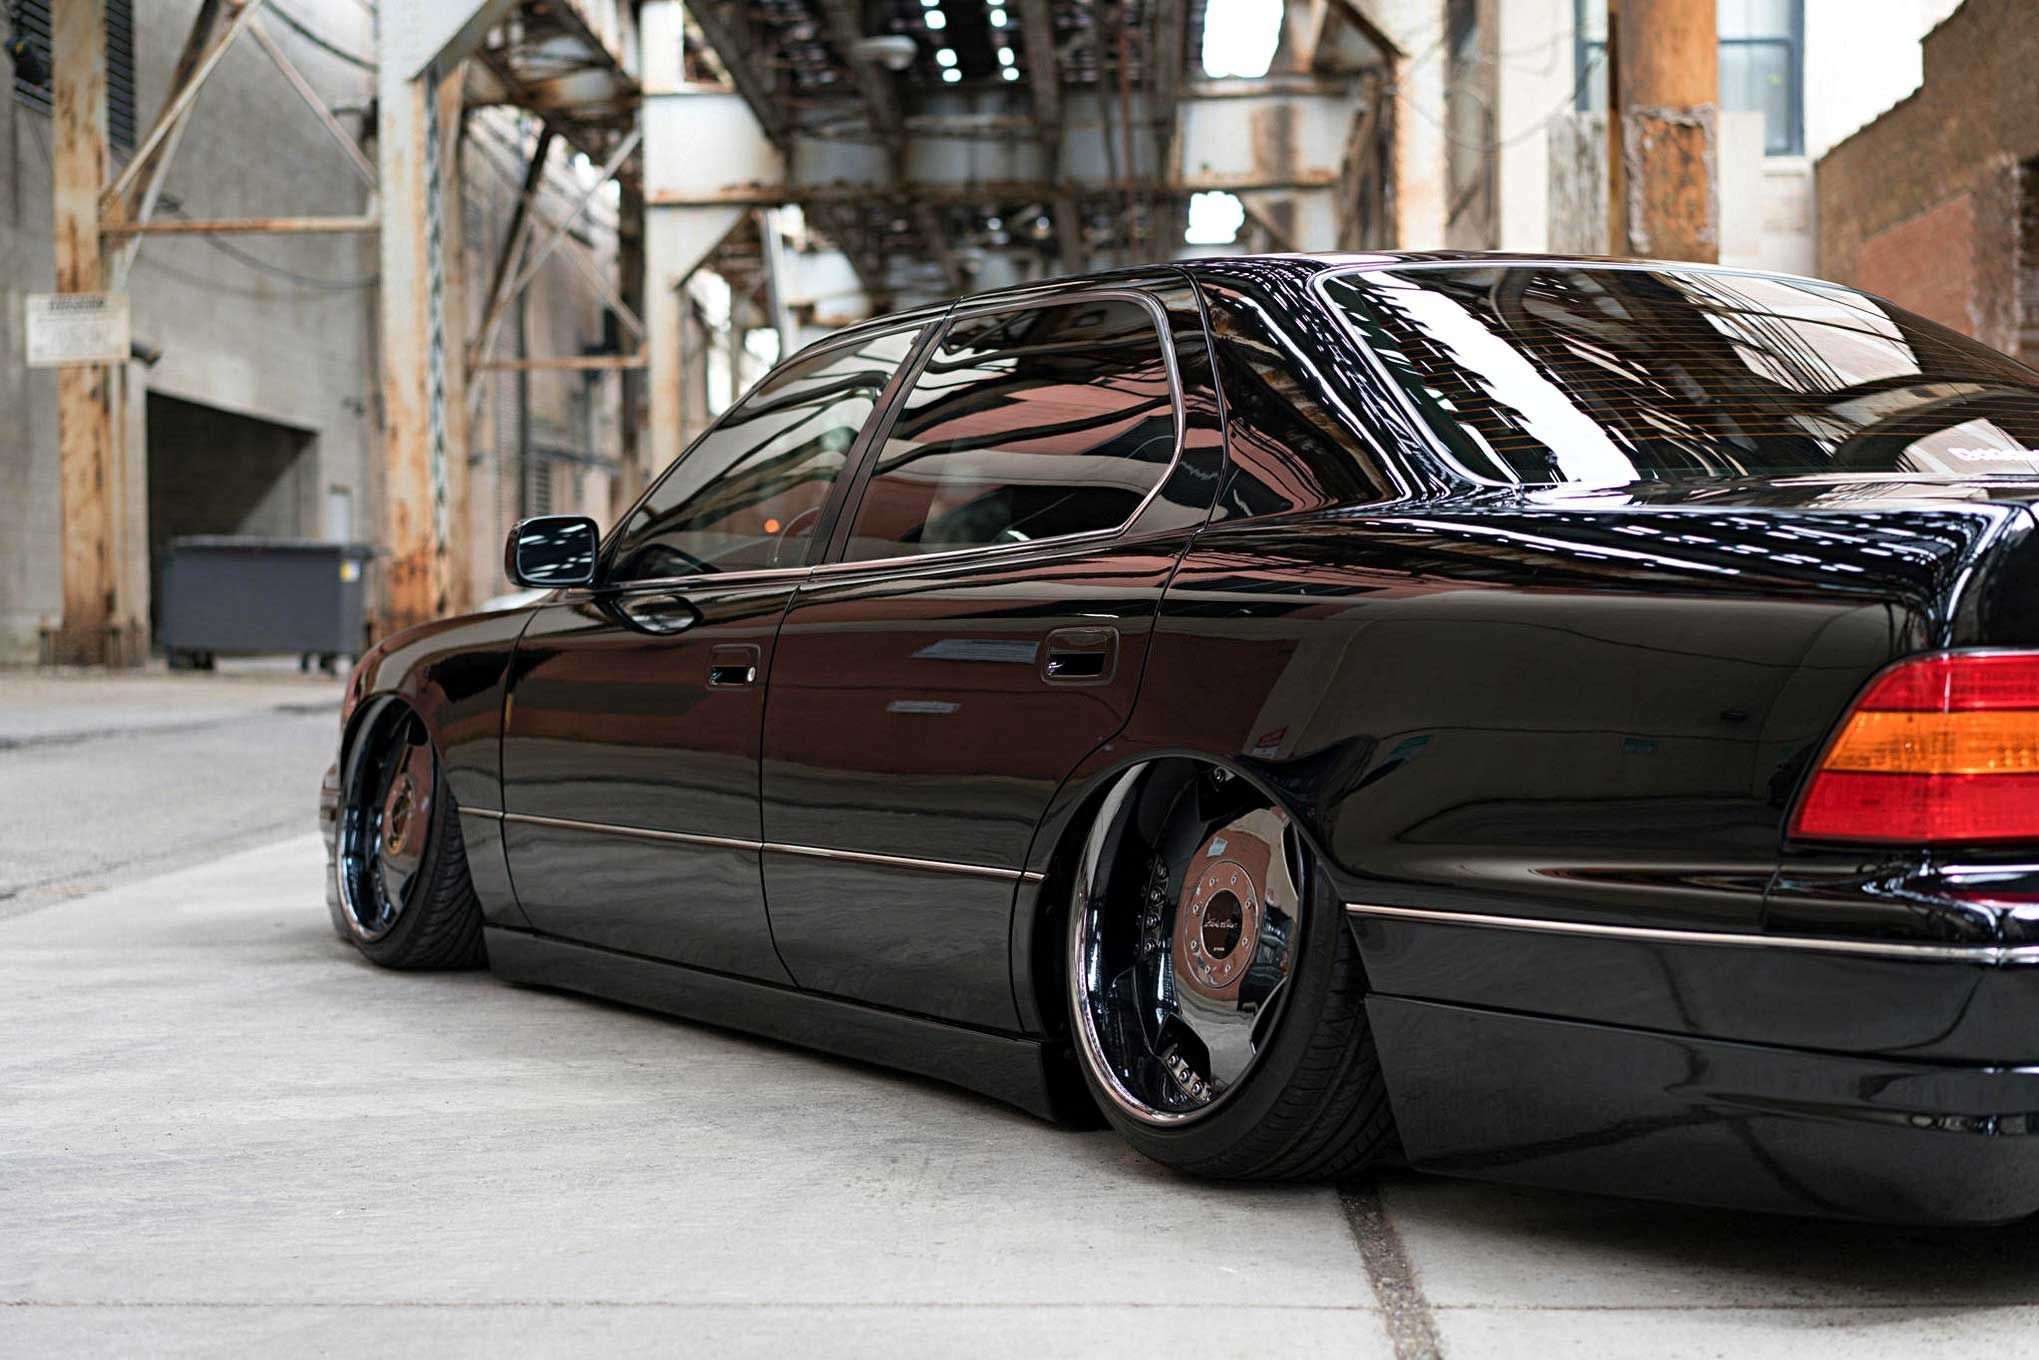 medium resolution of 2000 lexus ls400 work euroline dh wheels